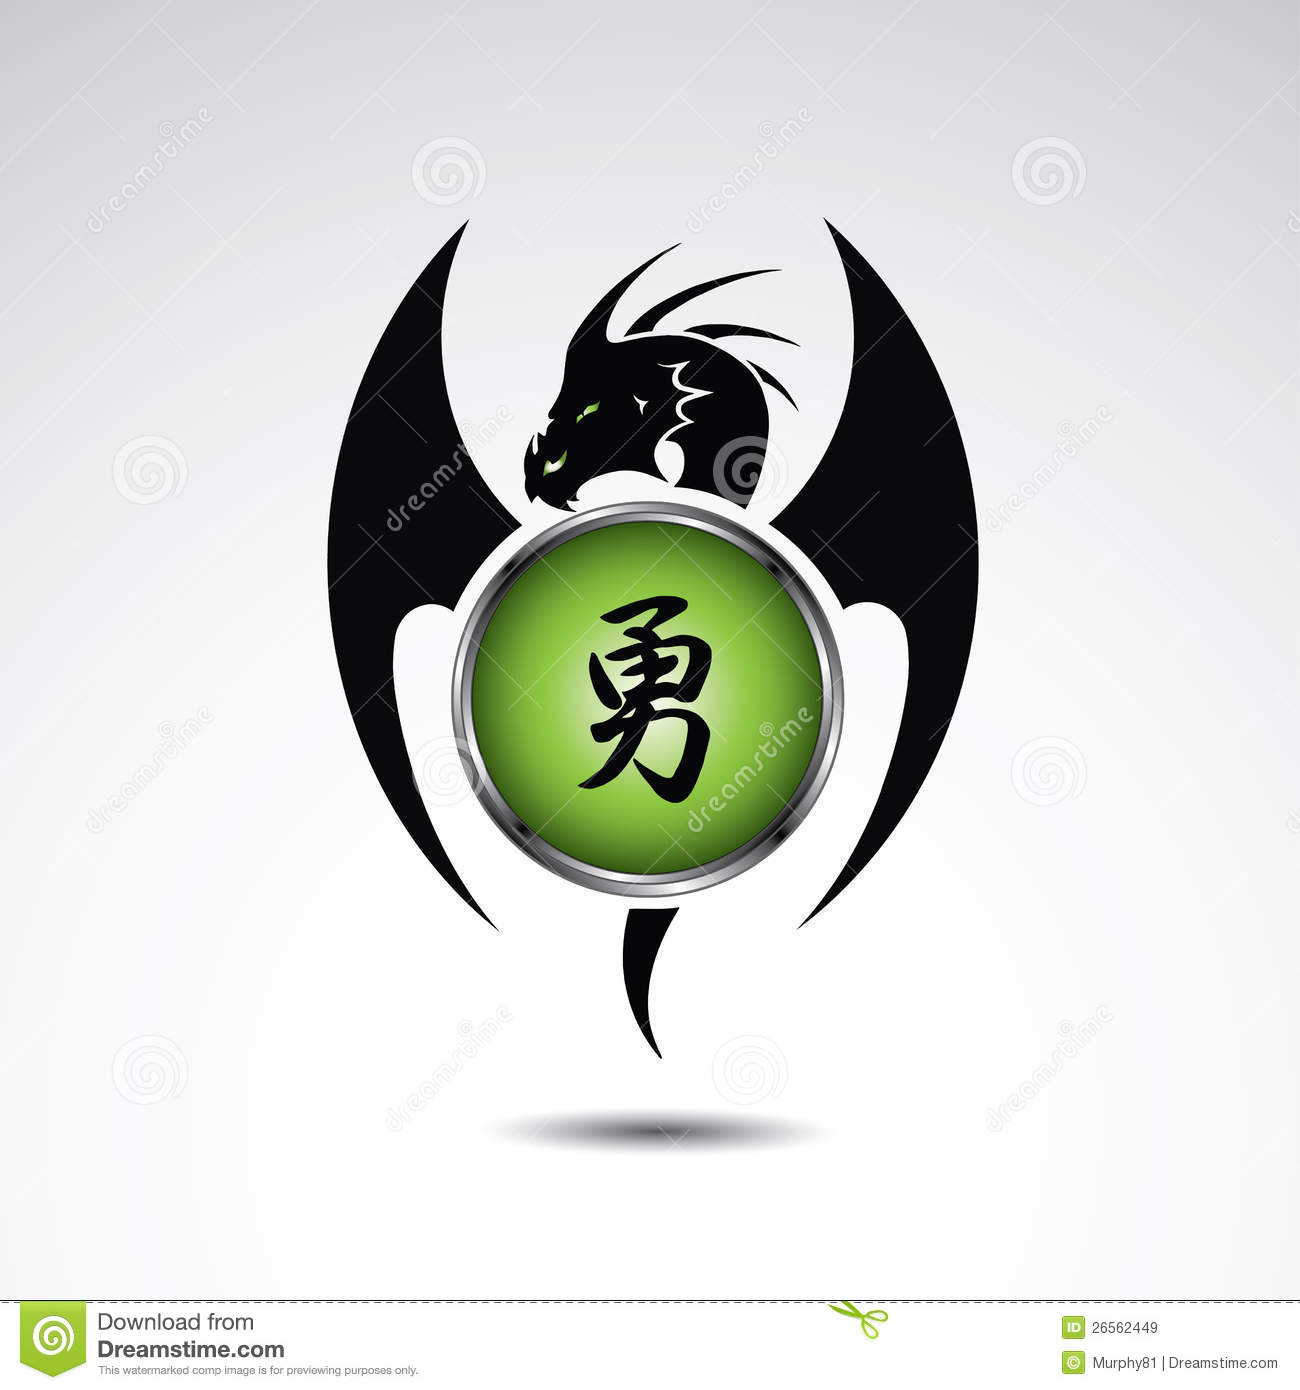 Dragon Courage Royalty Free Stock Images - Image: 26562449